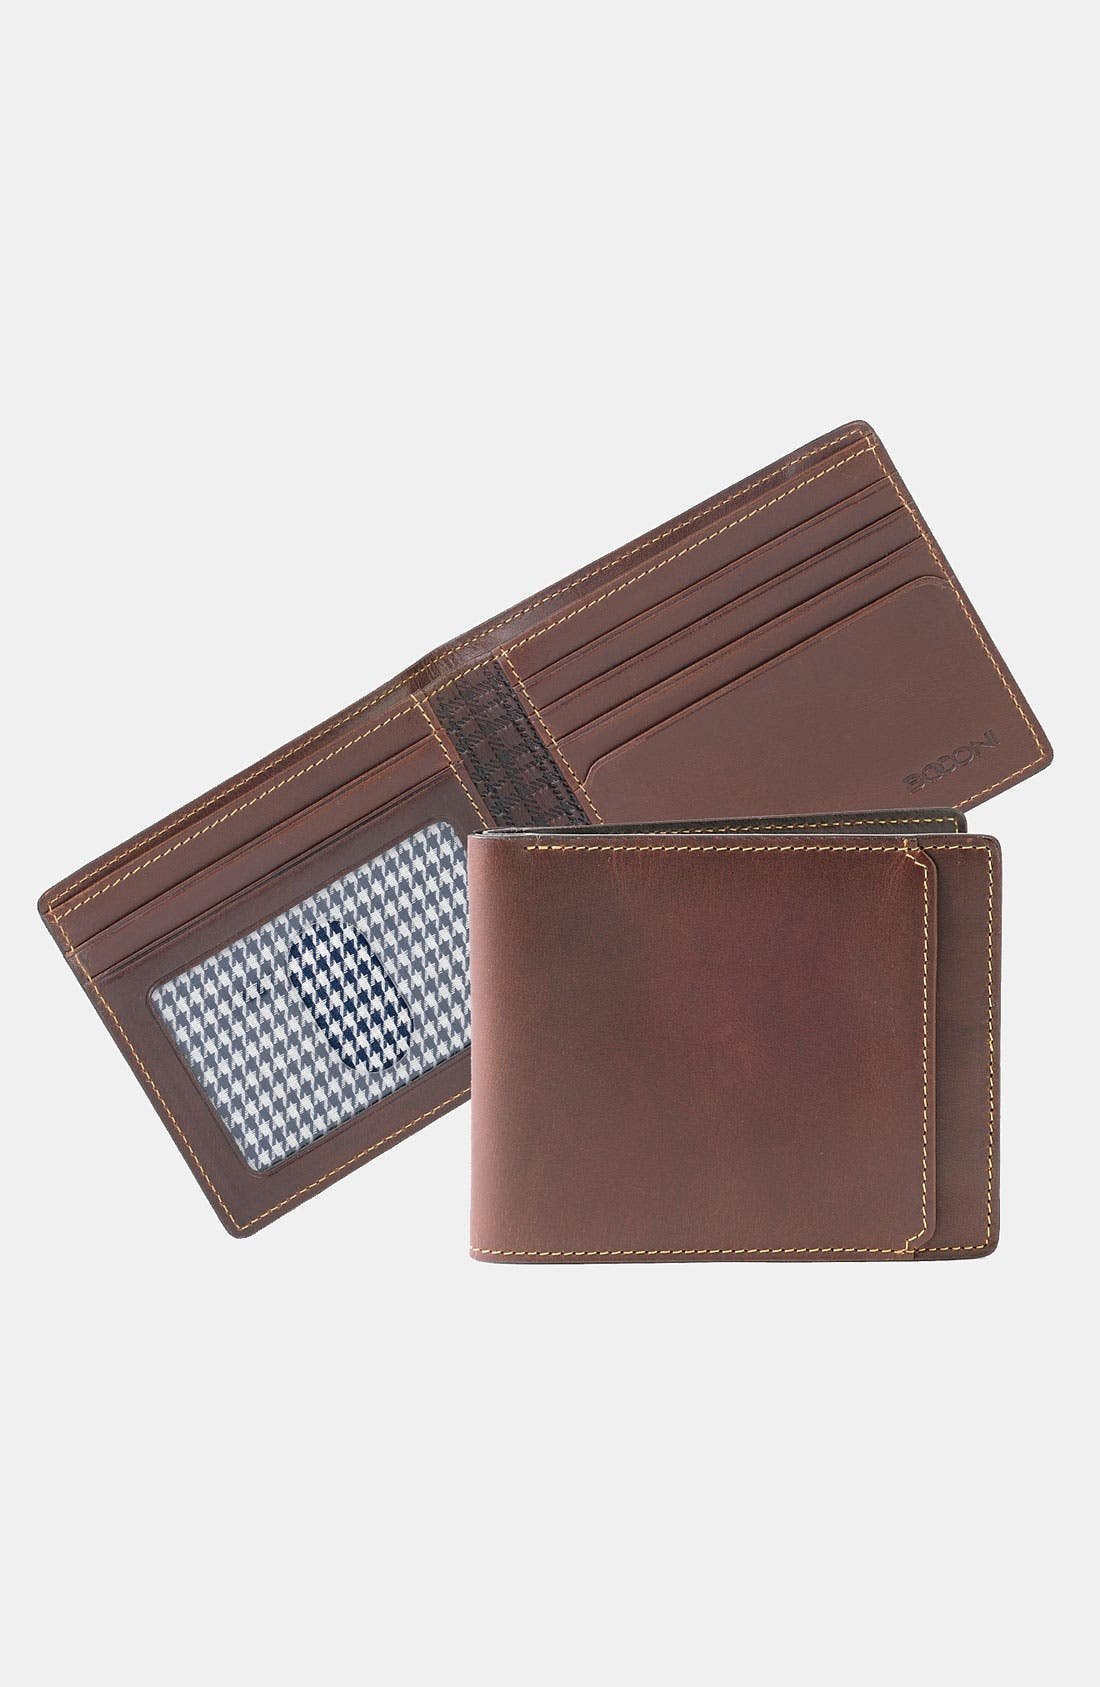 'Bryant' RFID Blocker Slimfold Wallet,                             Alternate thumbnail 3, color,